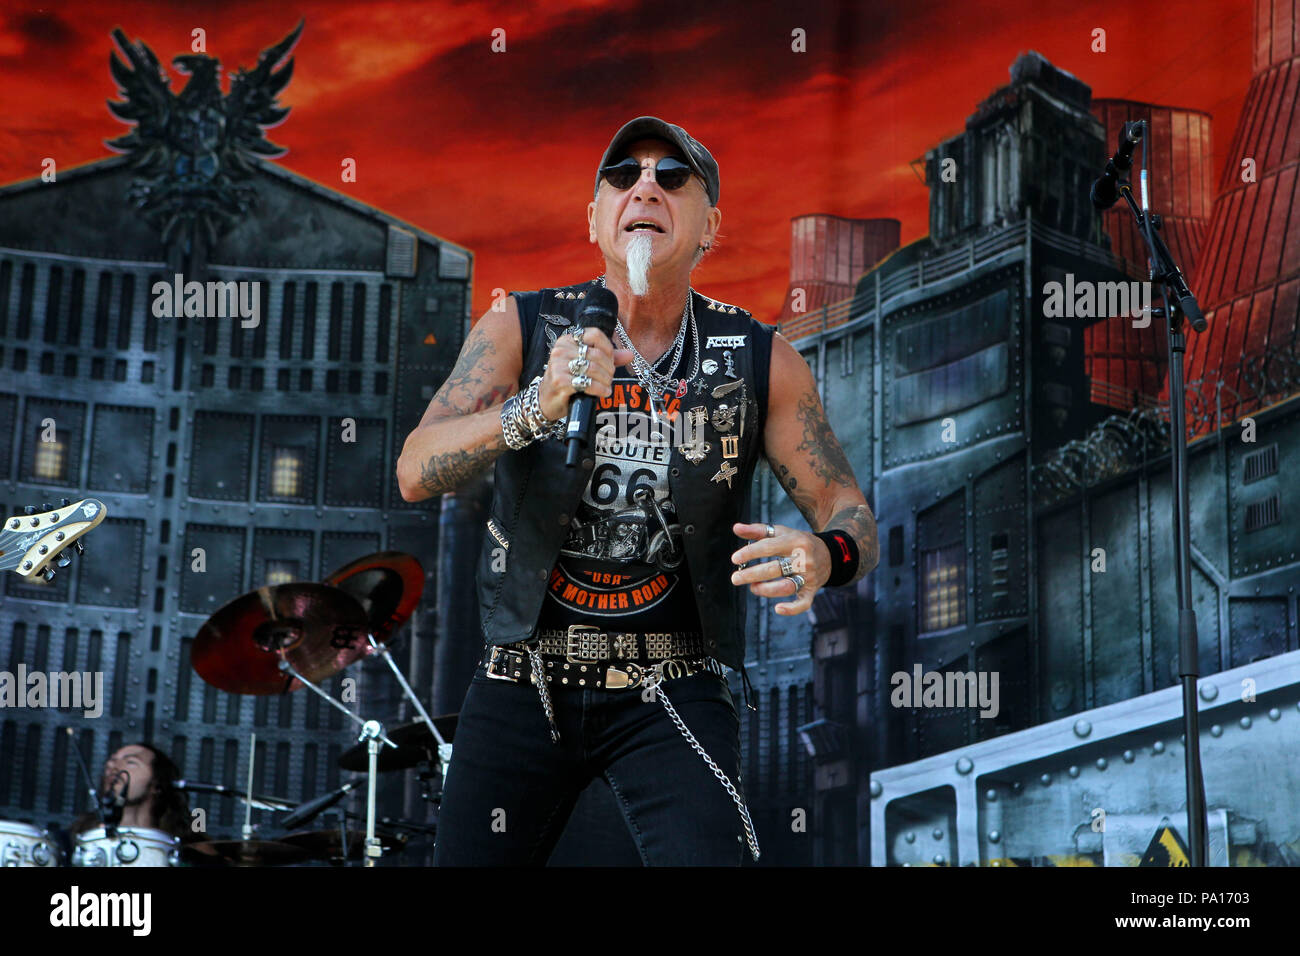 Malakasa, Greece. 19th July, 2018. Vocalist Mark Tornillo Of German Heavy Metal Group Accept Performing Live On Stage At Rockwave Festival in Terravibe park 37th km north of Athens. Credit: Aristidis Vafeiadakis/ZUMA Wire/Alamy Live News - Stock Image